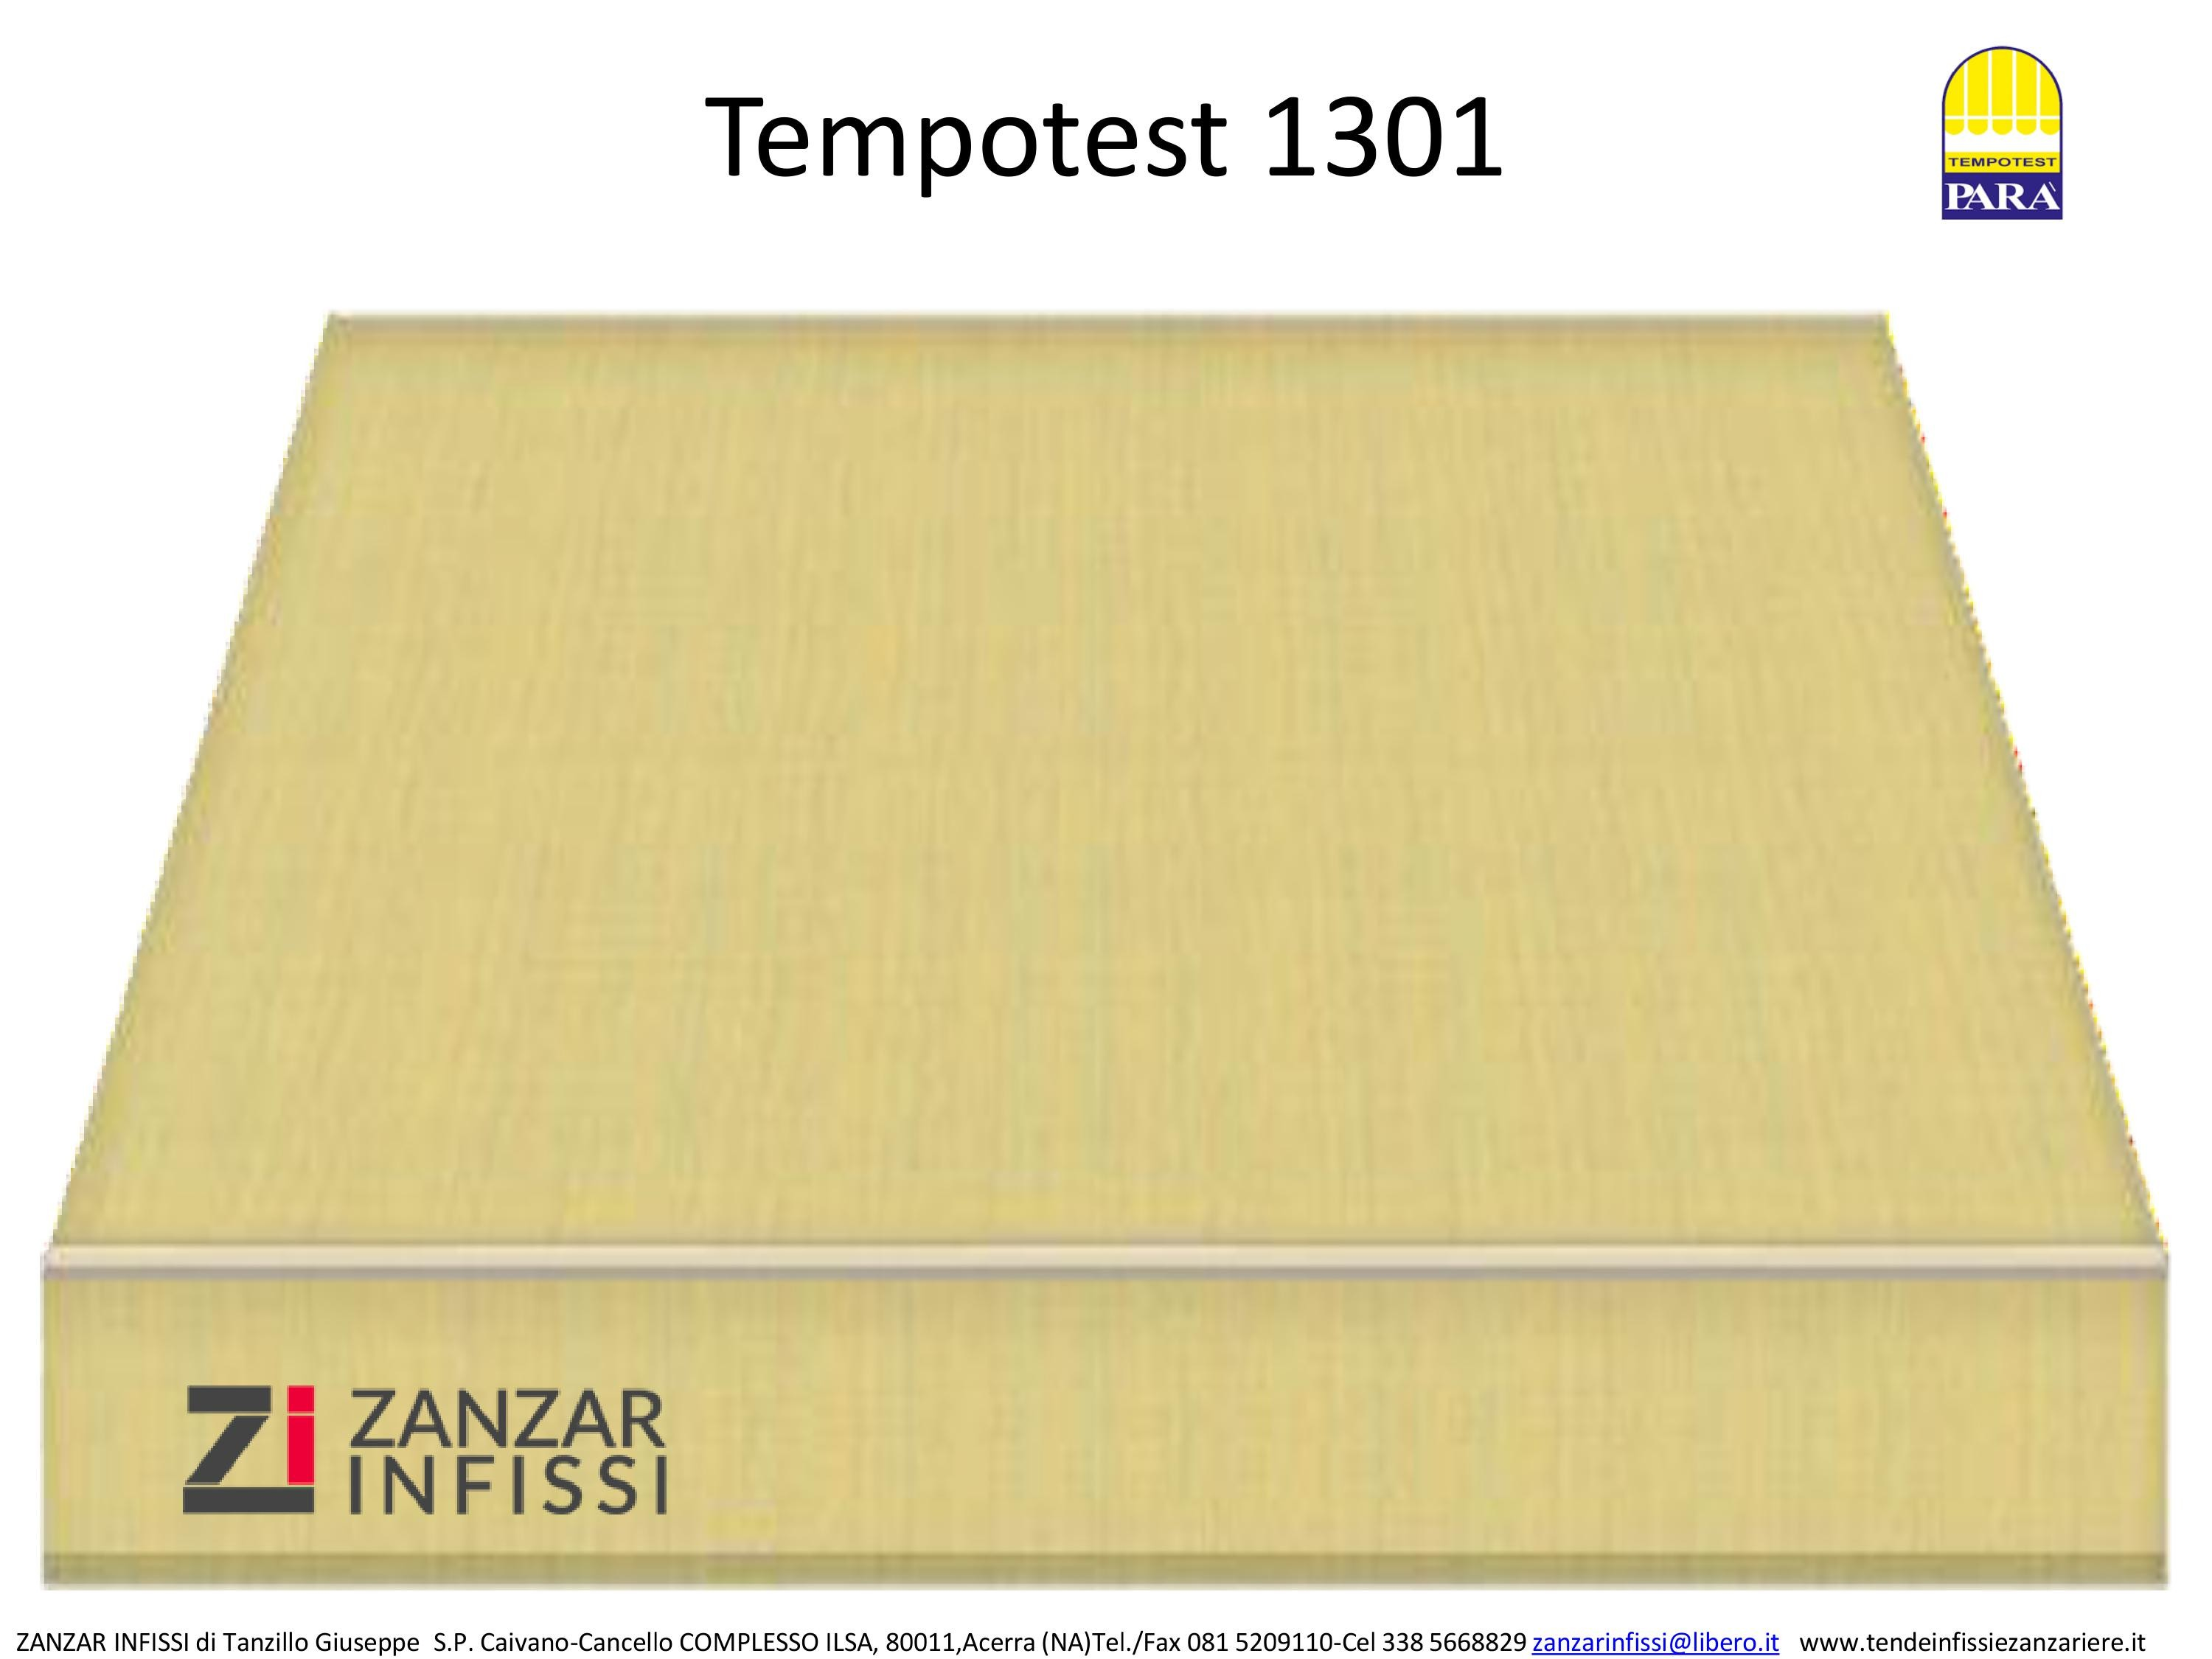 Tempotest 1301